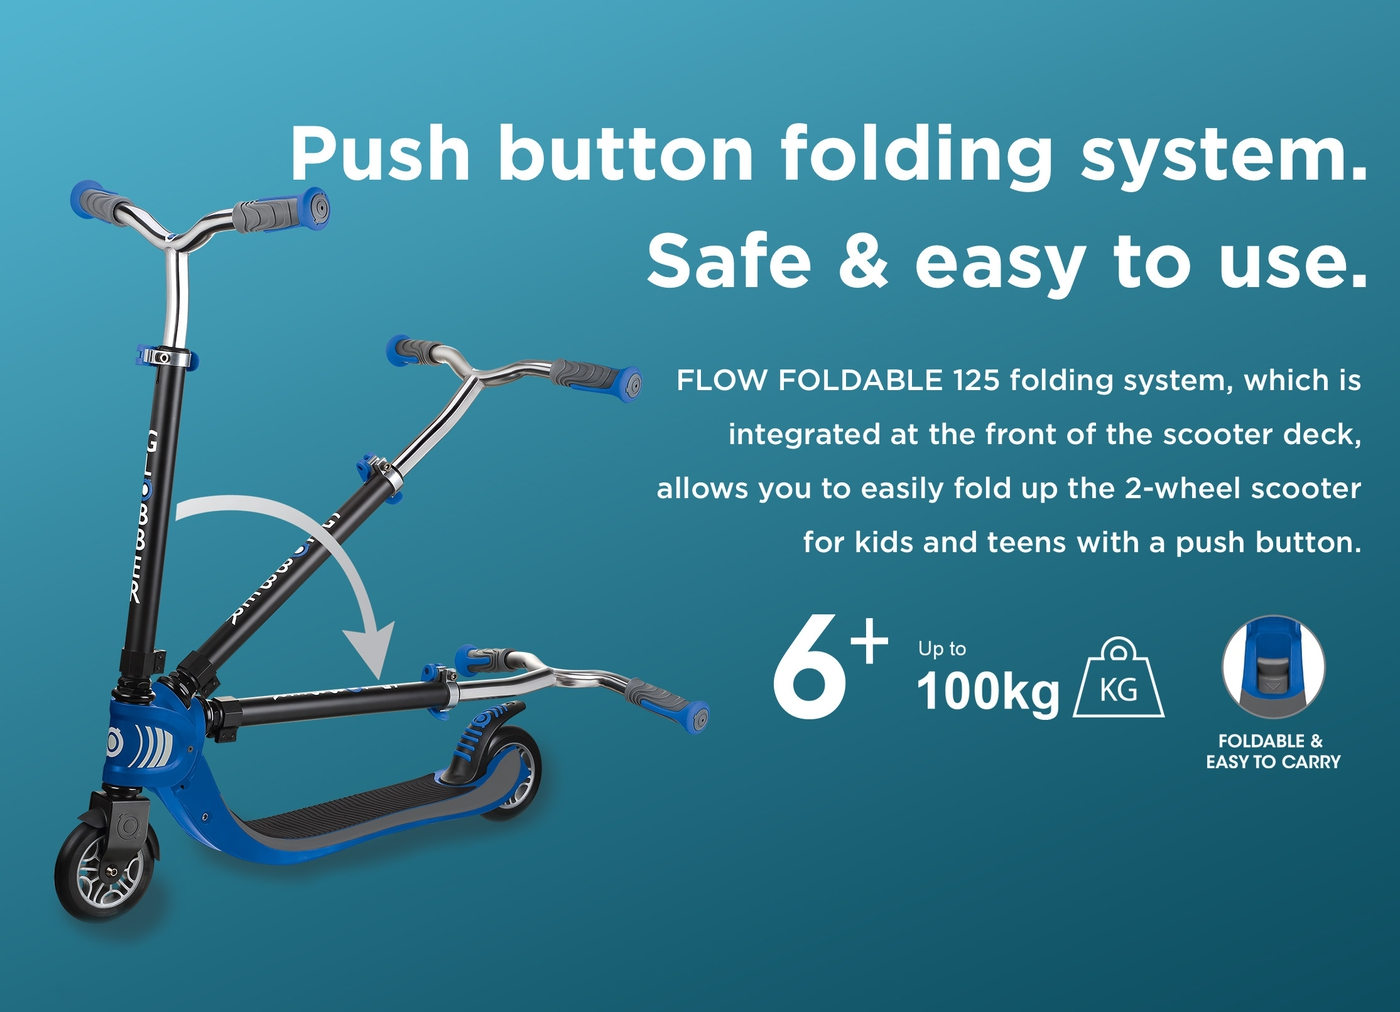 Push button folding system. Safe and easy to use. FLOW FOLDABLE 125 patented folding system, which is integrated at the front of the scooter deck, allows you to easily fold up the 2-wheel scooter for kids and teens with a push button.